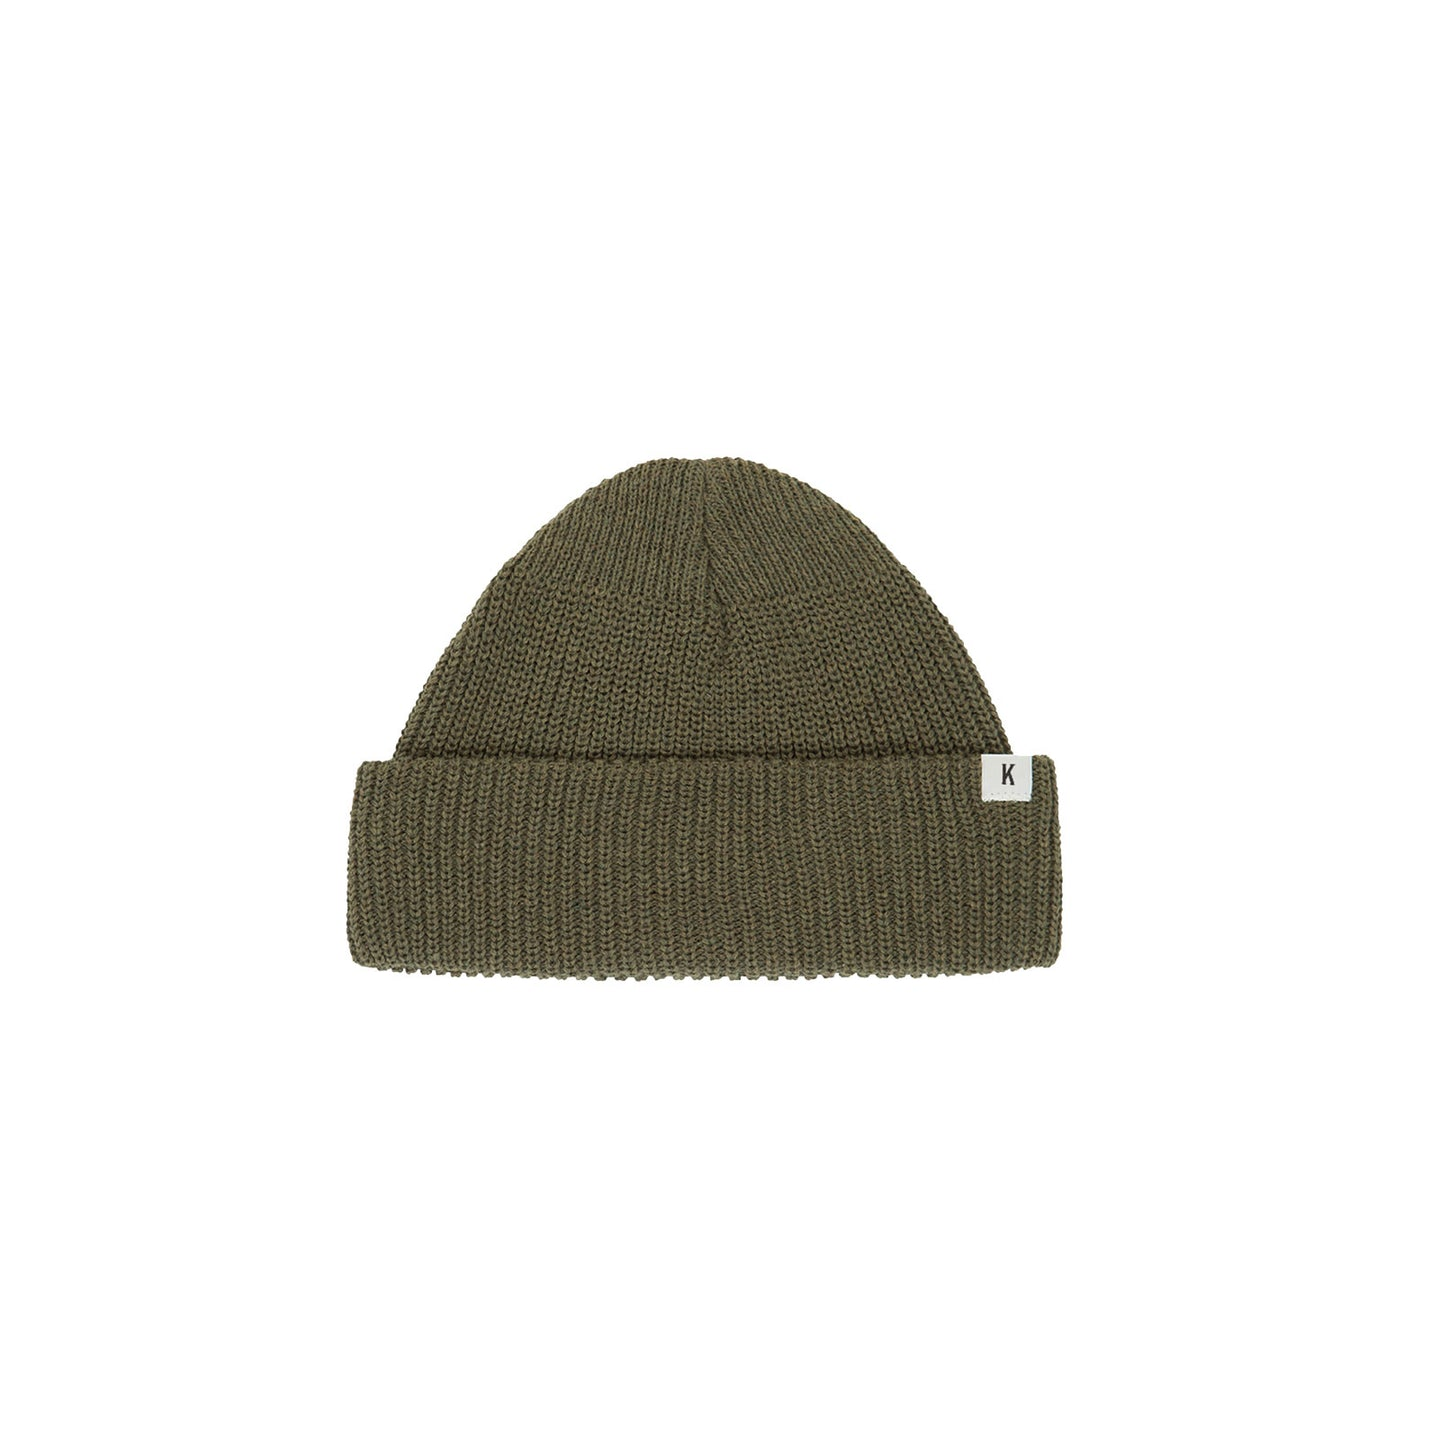 Knickerbocker Watch Cap